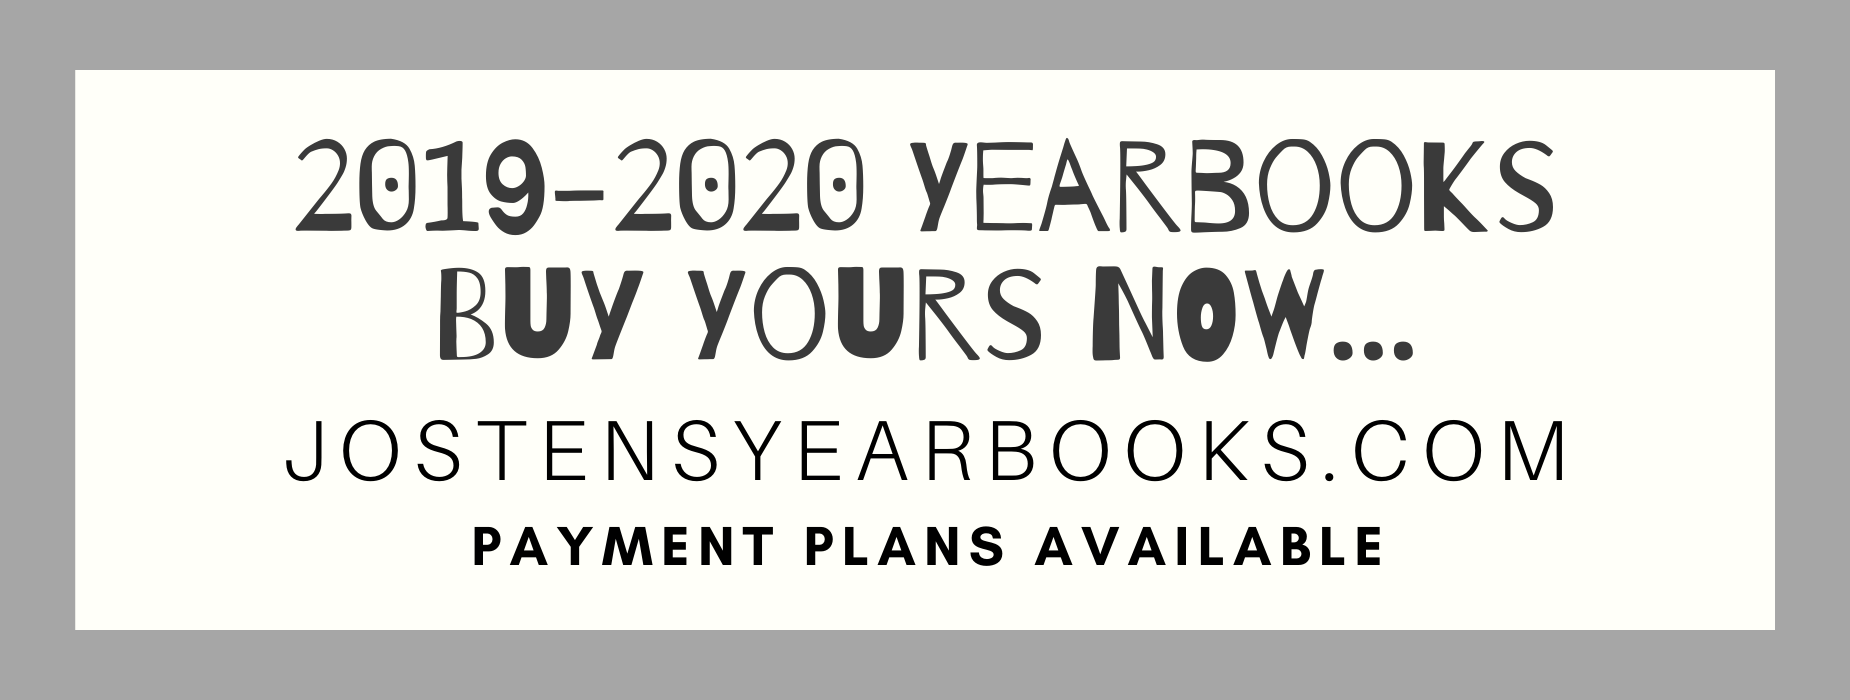 2019-2020 Yearbooks, Buy Yours Now, jostensyearbooks.com, Installment Plans Available